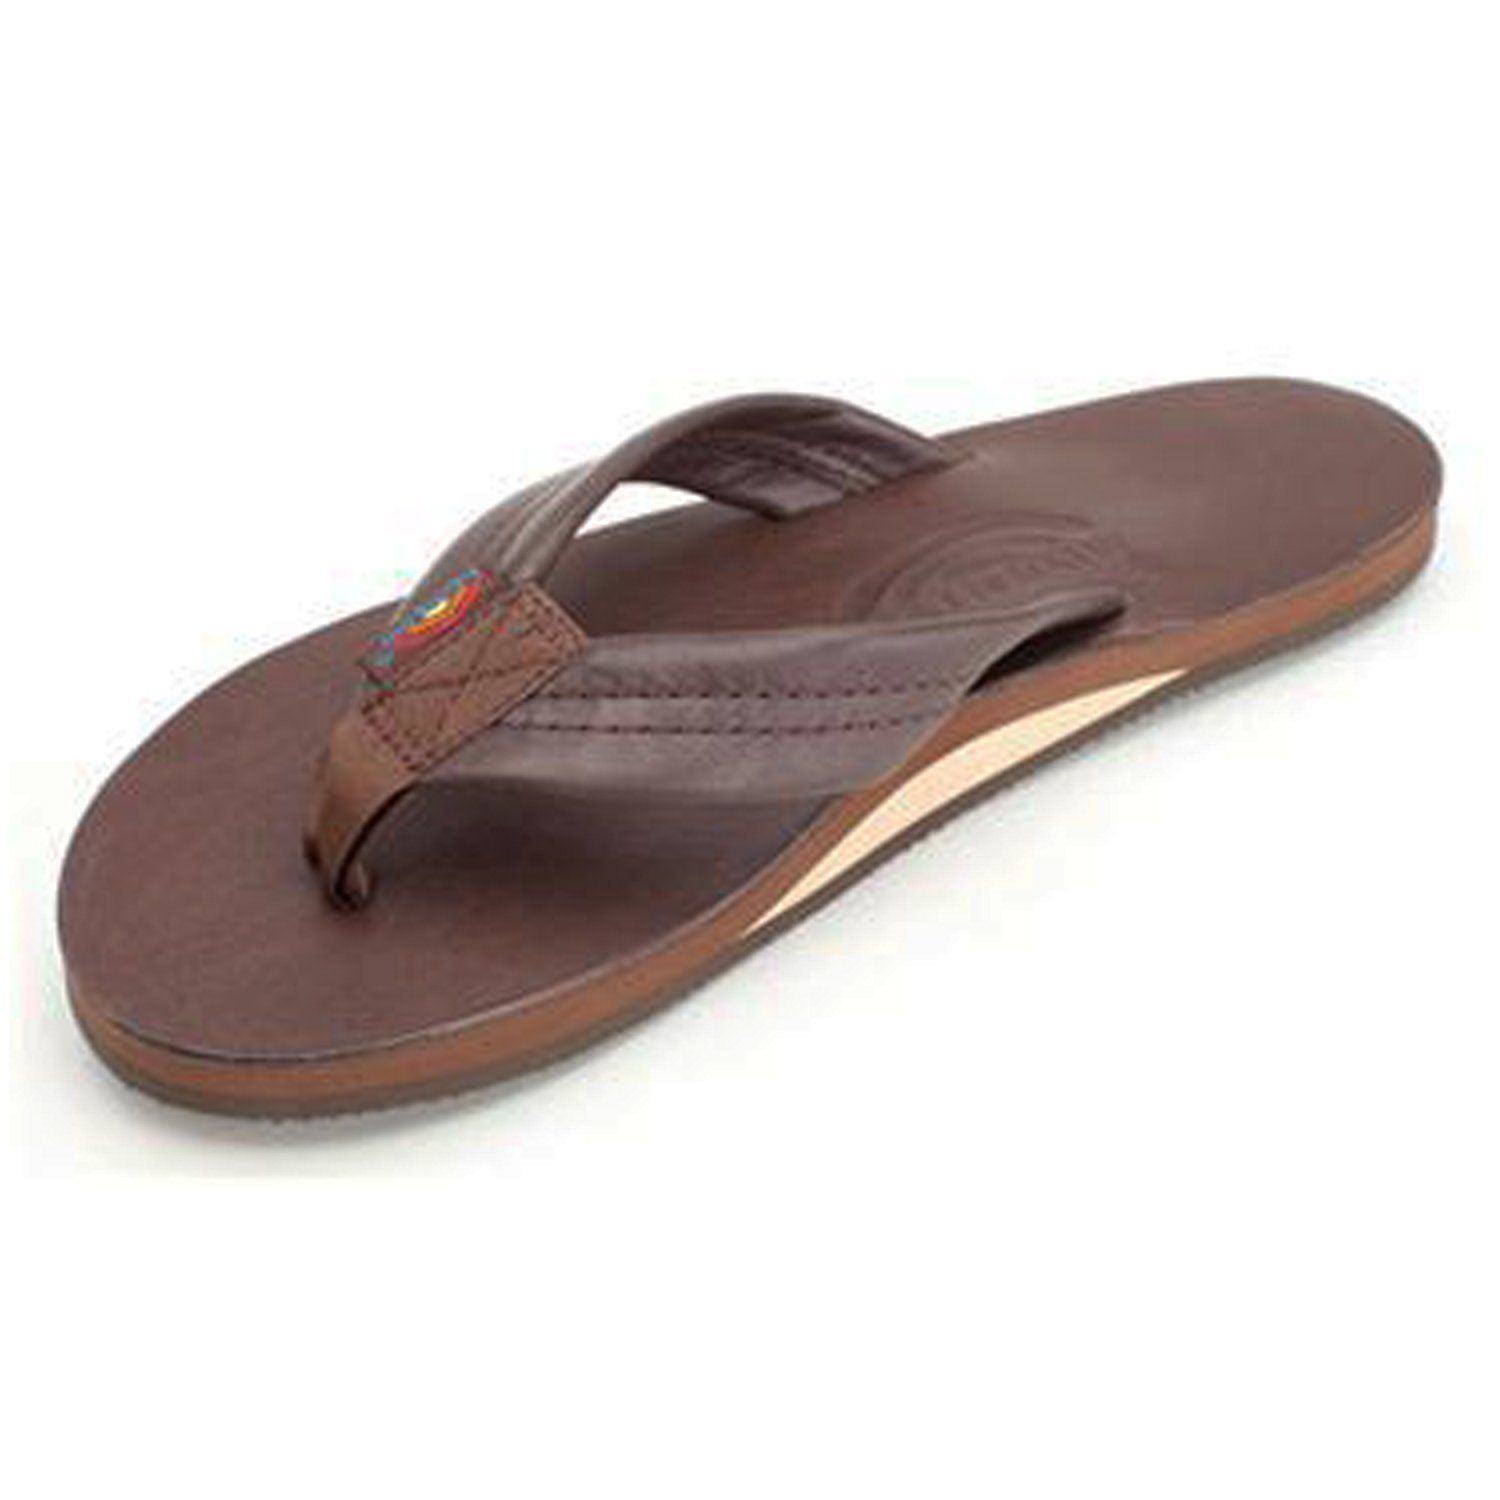 de4606b23 Rainbow Womens Leather Wide Strap Single Layer Arch Sandal Mocha Size Large  (11)    Find out more details by clicking the image   Flip flops